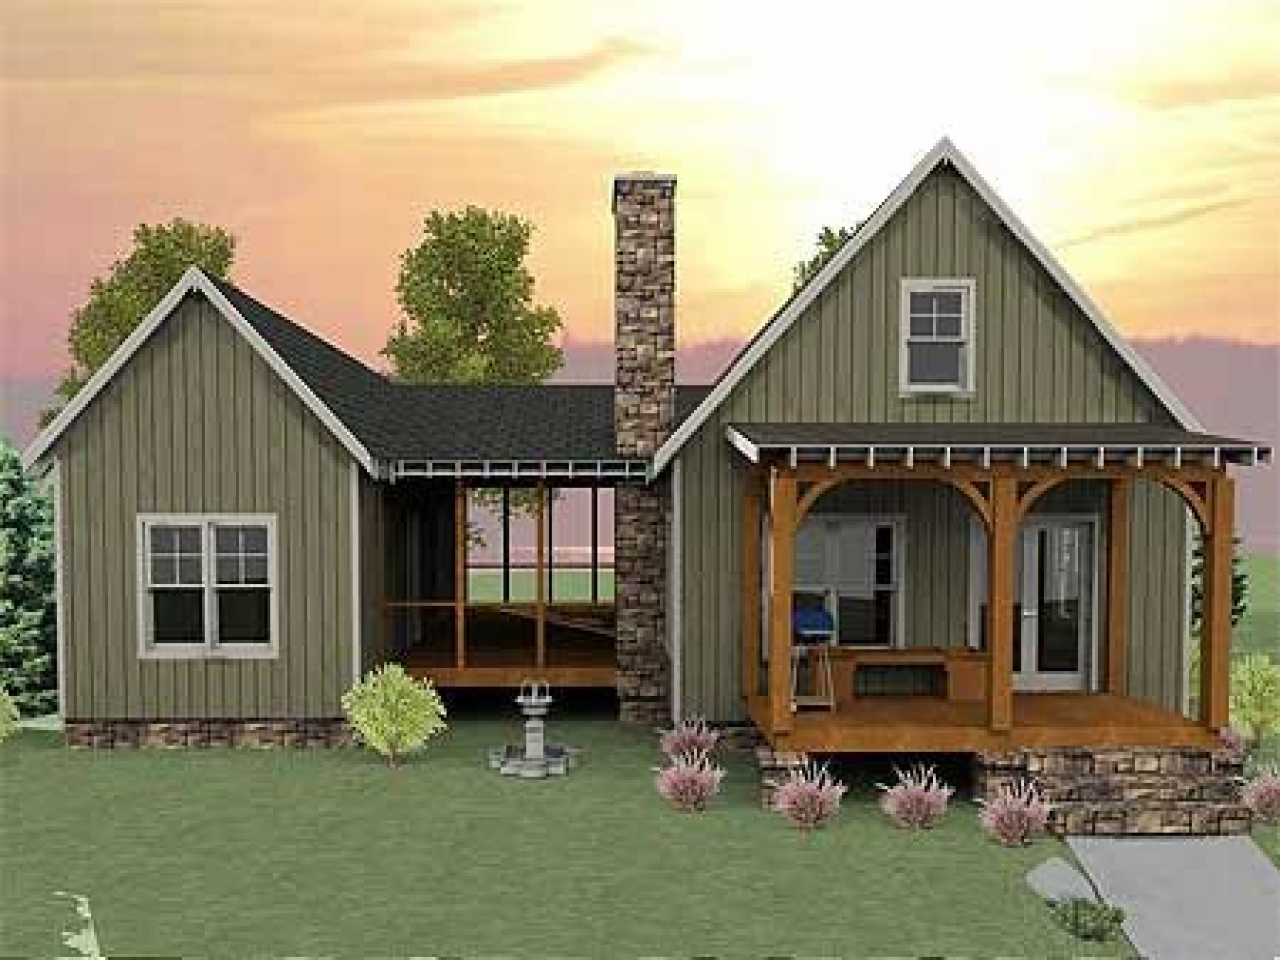 Tiny Home Designs Plans: Small House Plans With Screened Porch Small House Plans